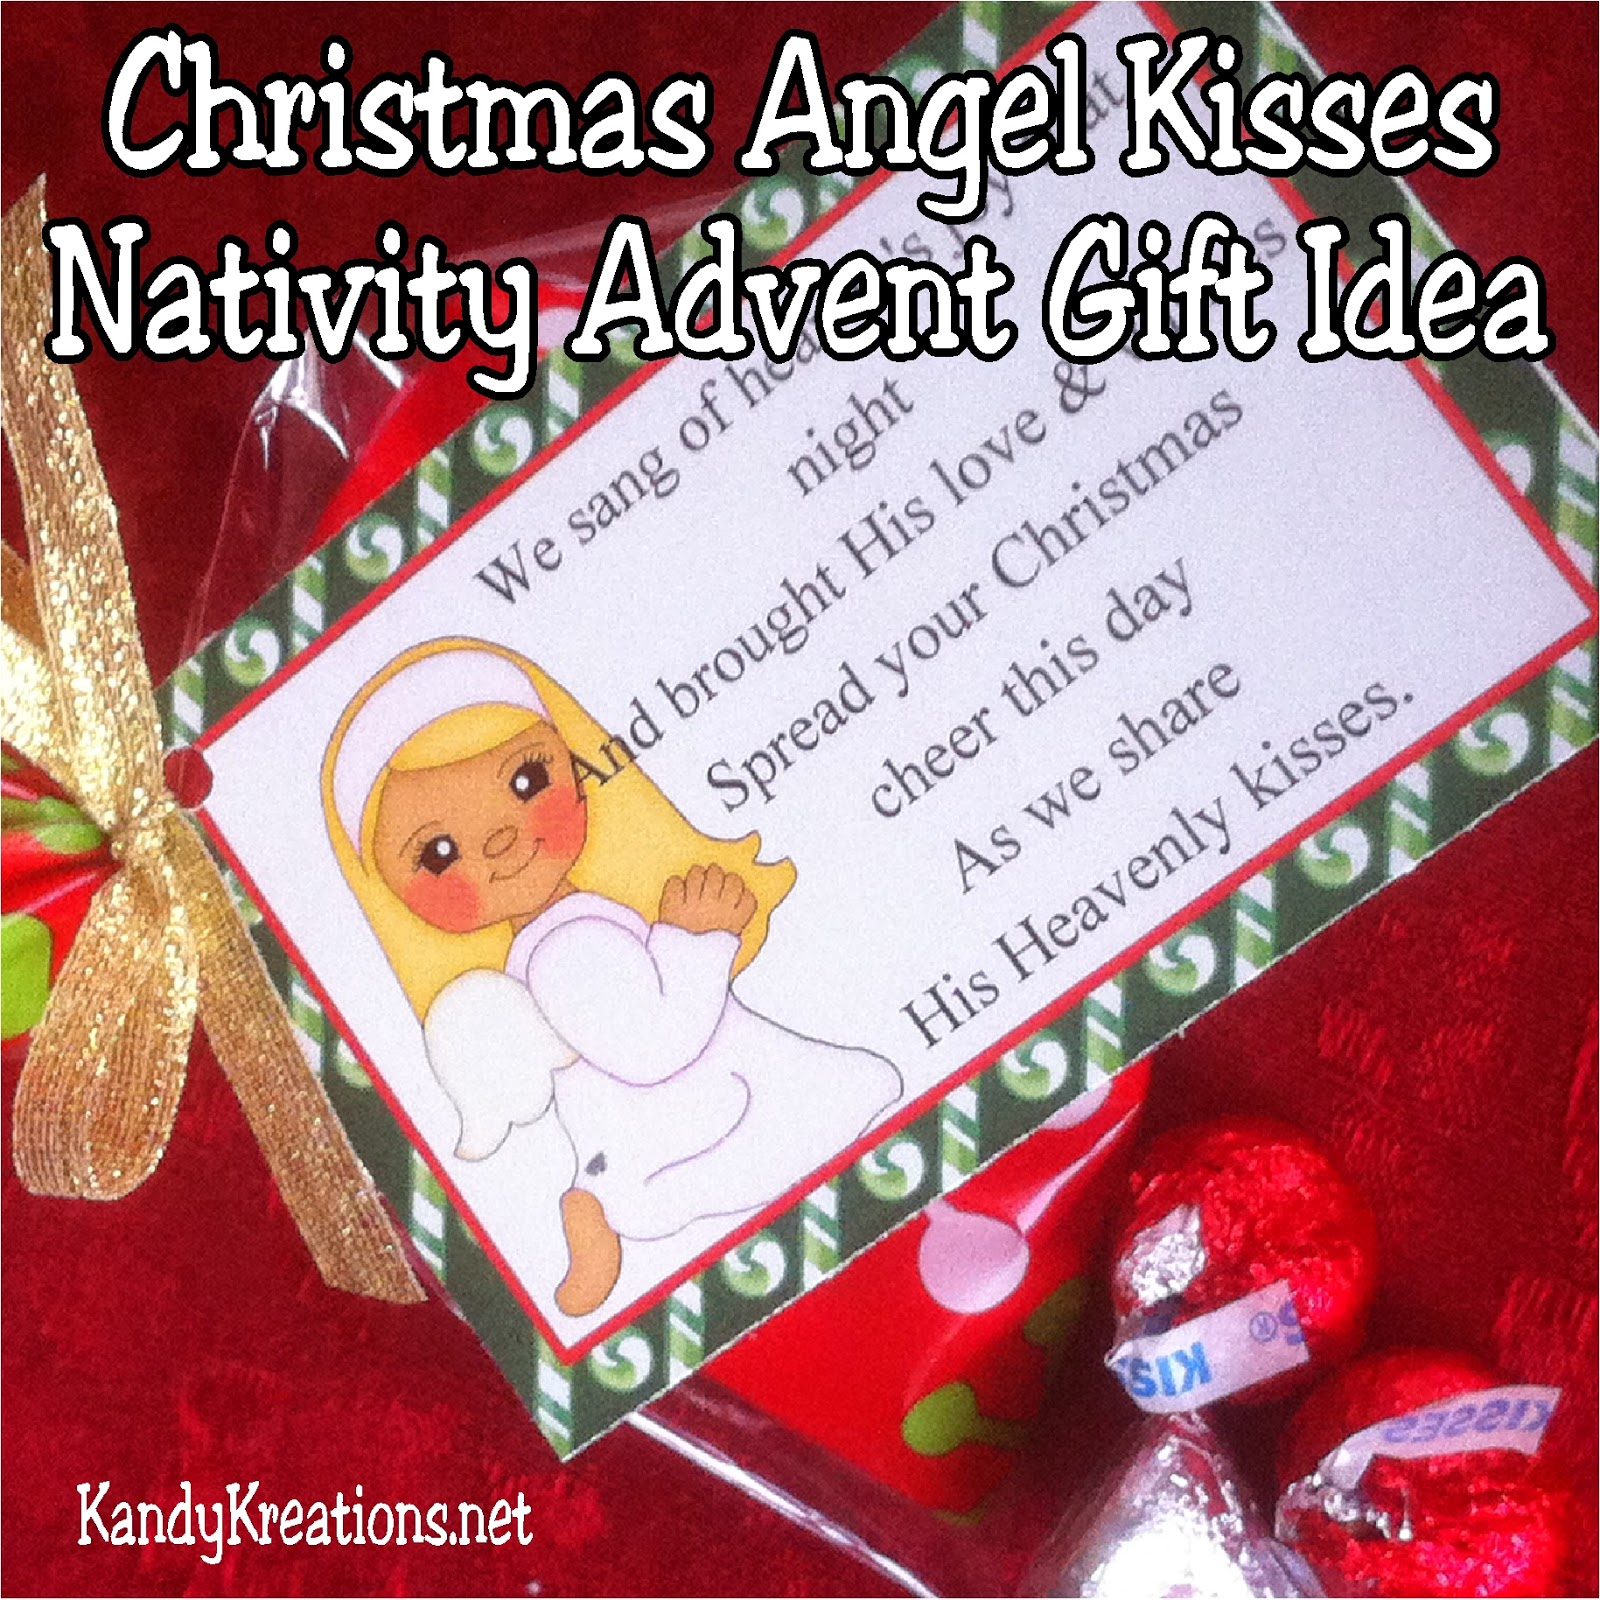 Looking for a great Christmas gift idea for friends and neighbors? This Nativity Advent gift idea has 12 days of sweet treats, poems and gifts to bring Christ into Christmas in a fun way. Day nine has a Christmas angel bringing heavenly kisses from on high.